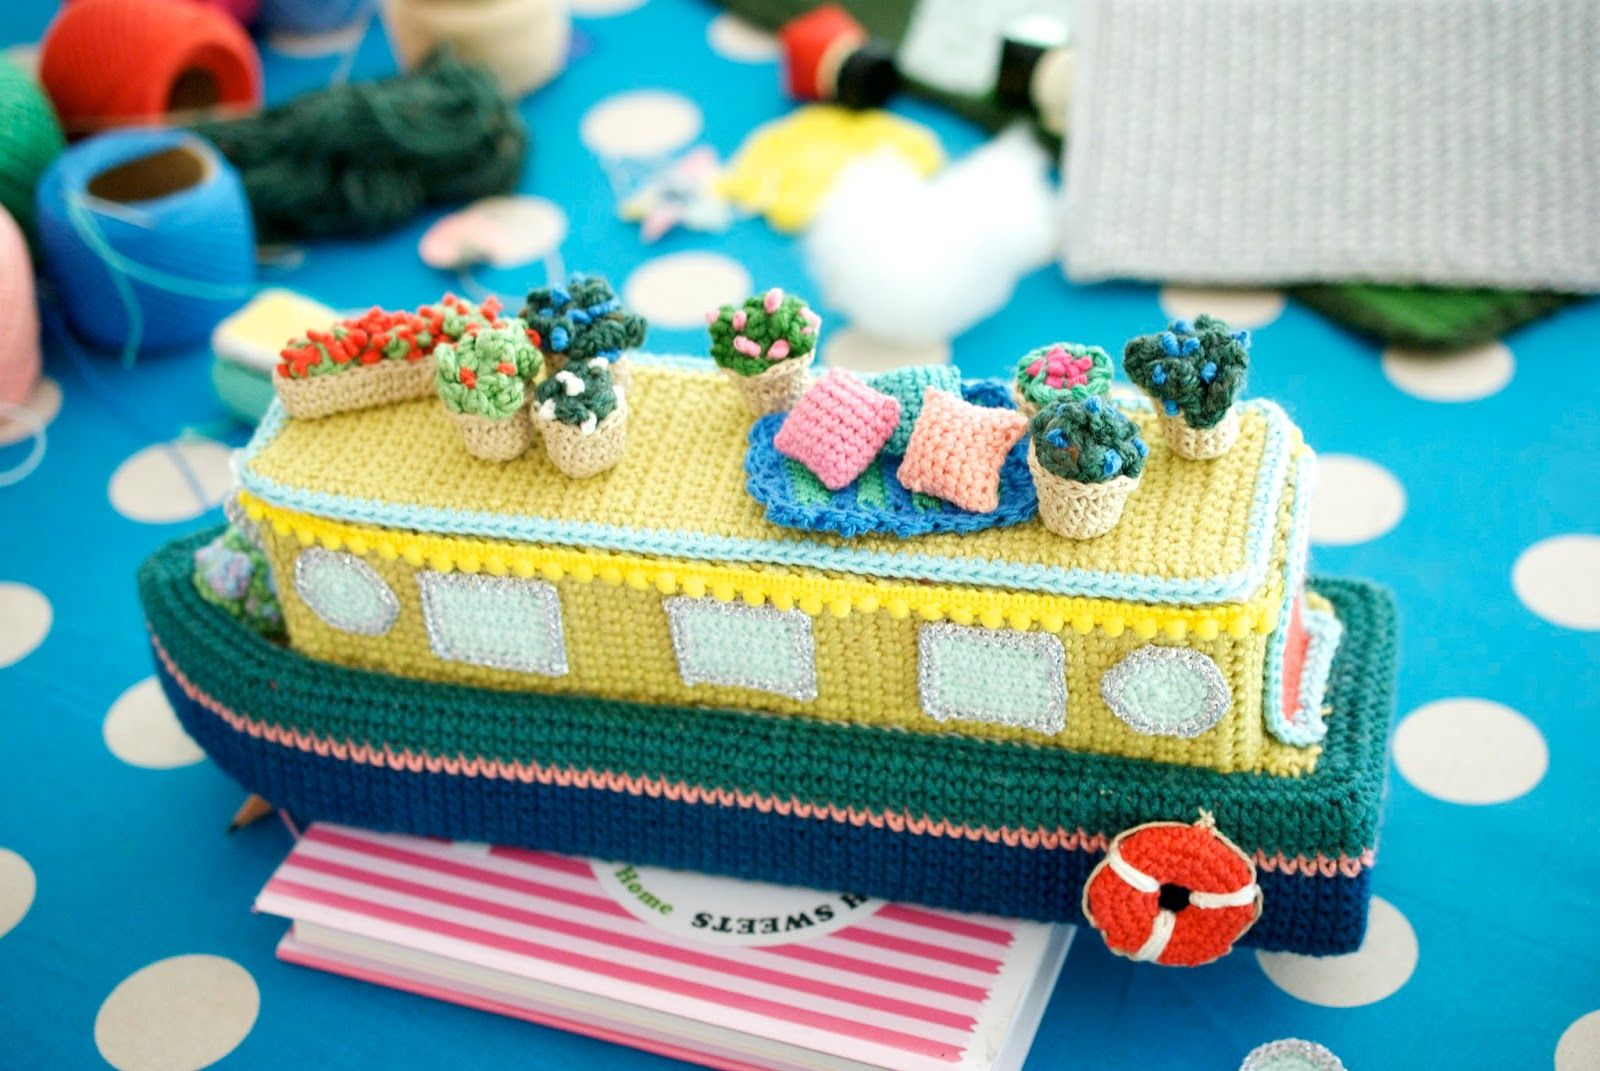 Greedy For Colour: A Sneak Peek at Let's Go Camping! Crochet Your Own  Adventure